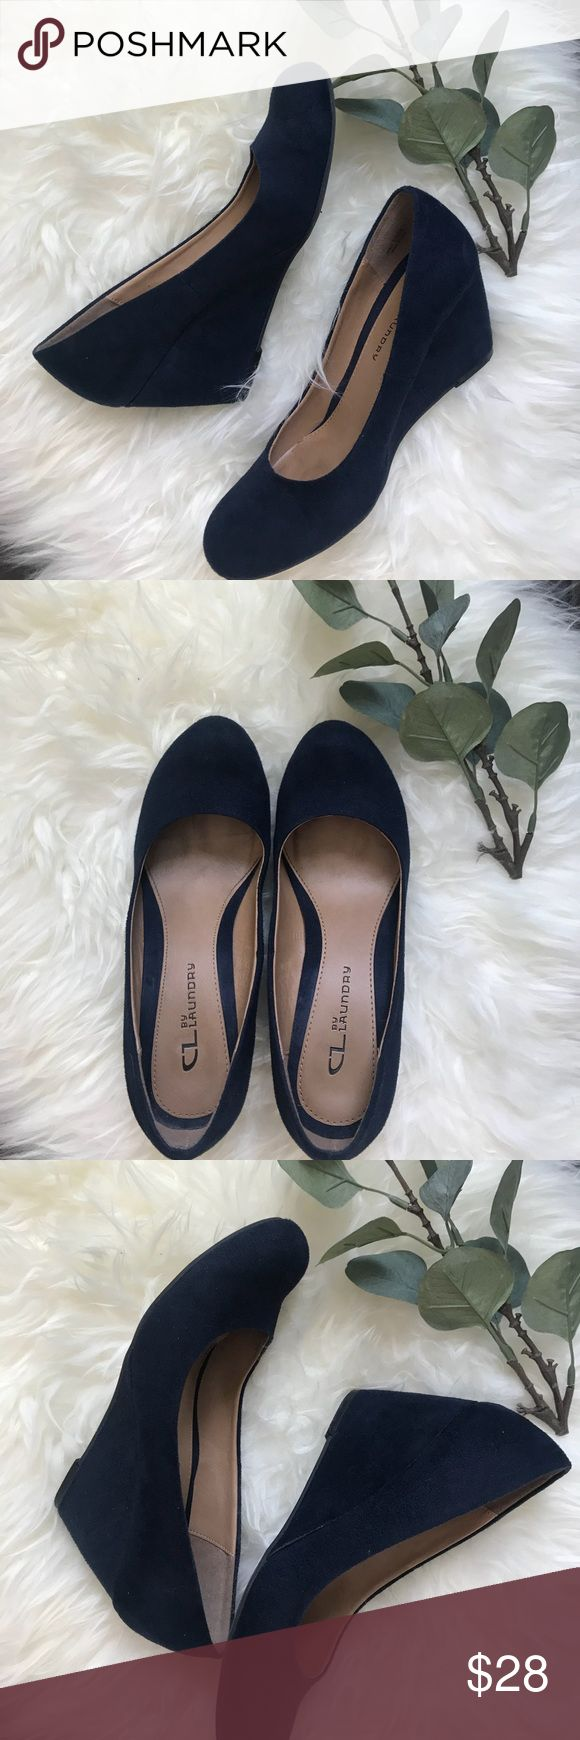 """Chinese Laundry faux vegan suede navy wedges Chinese Laundry faux vegan suede navy wedges. EUC, worn once. 3"""" heel. Chinese Laundry Shoes Wedges"""